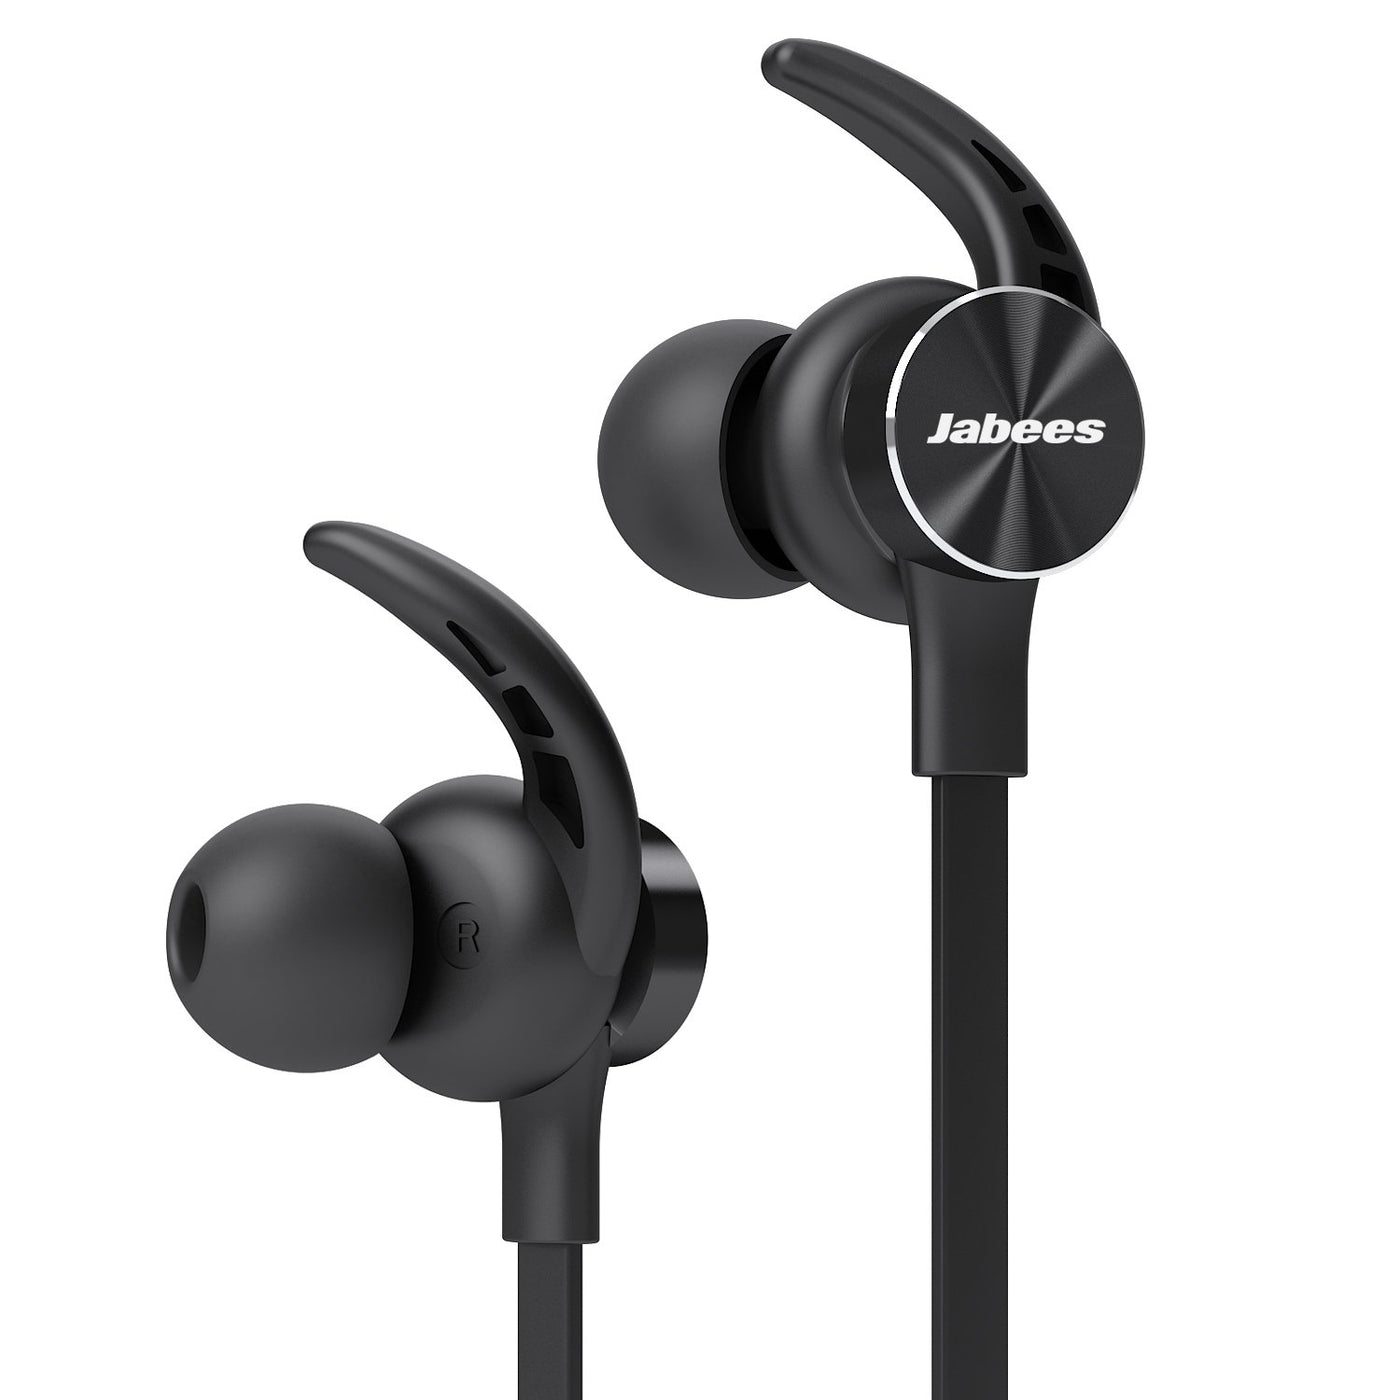 Jabees Mag Bluetooth Stereo Earphones Official Jabees Store